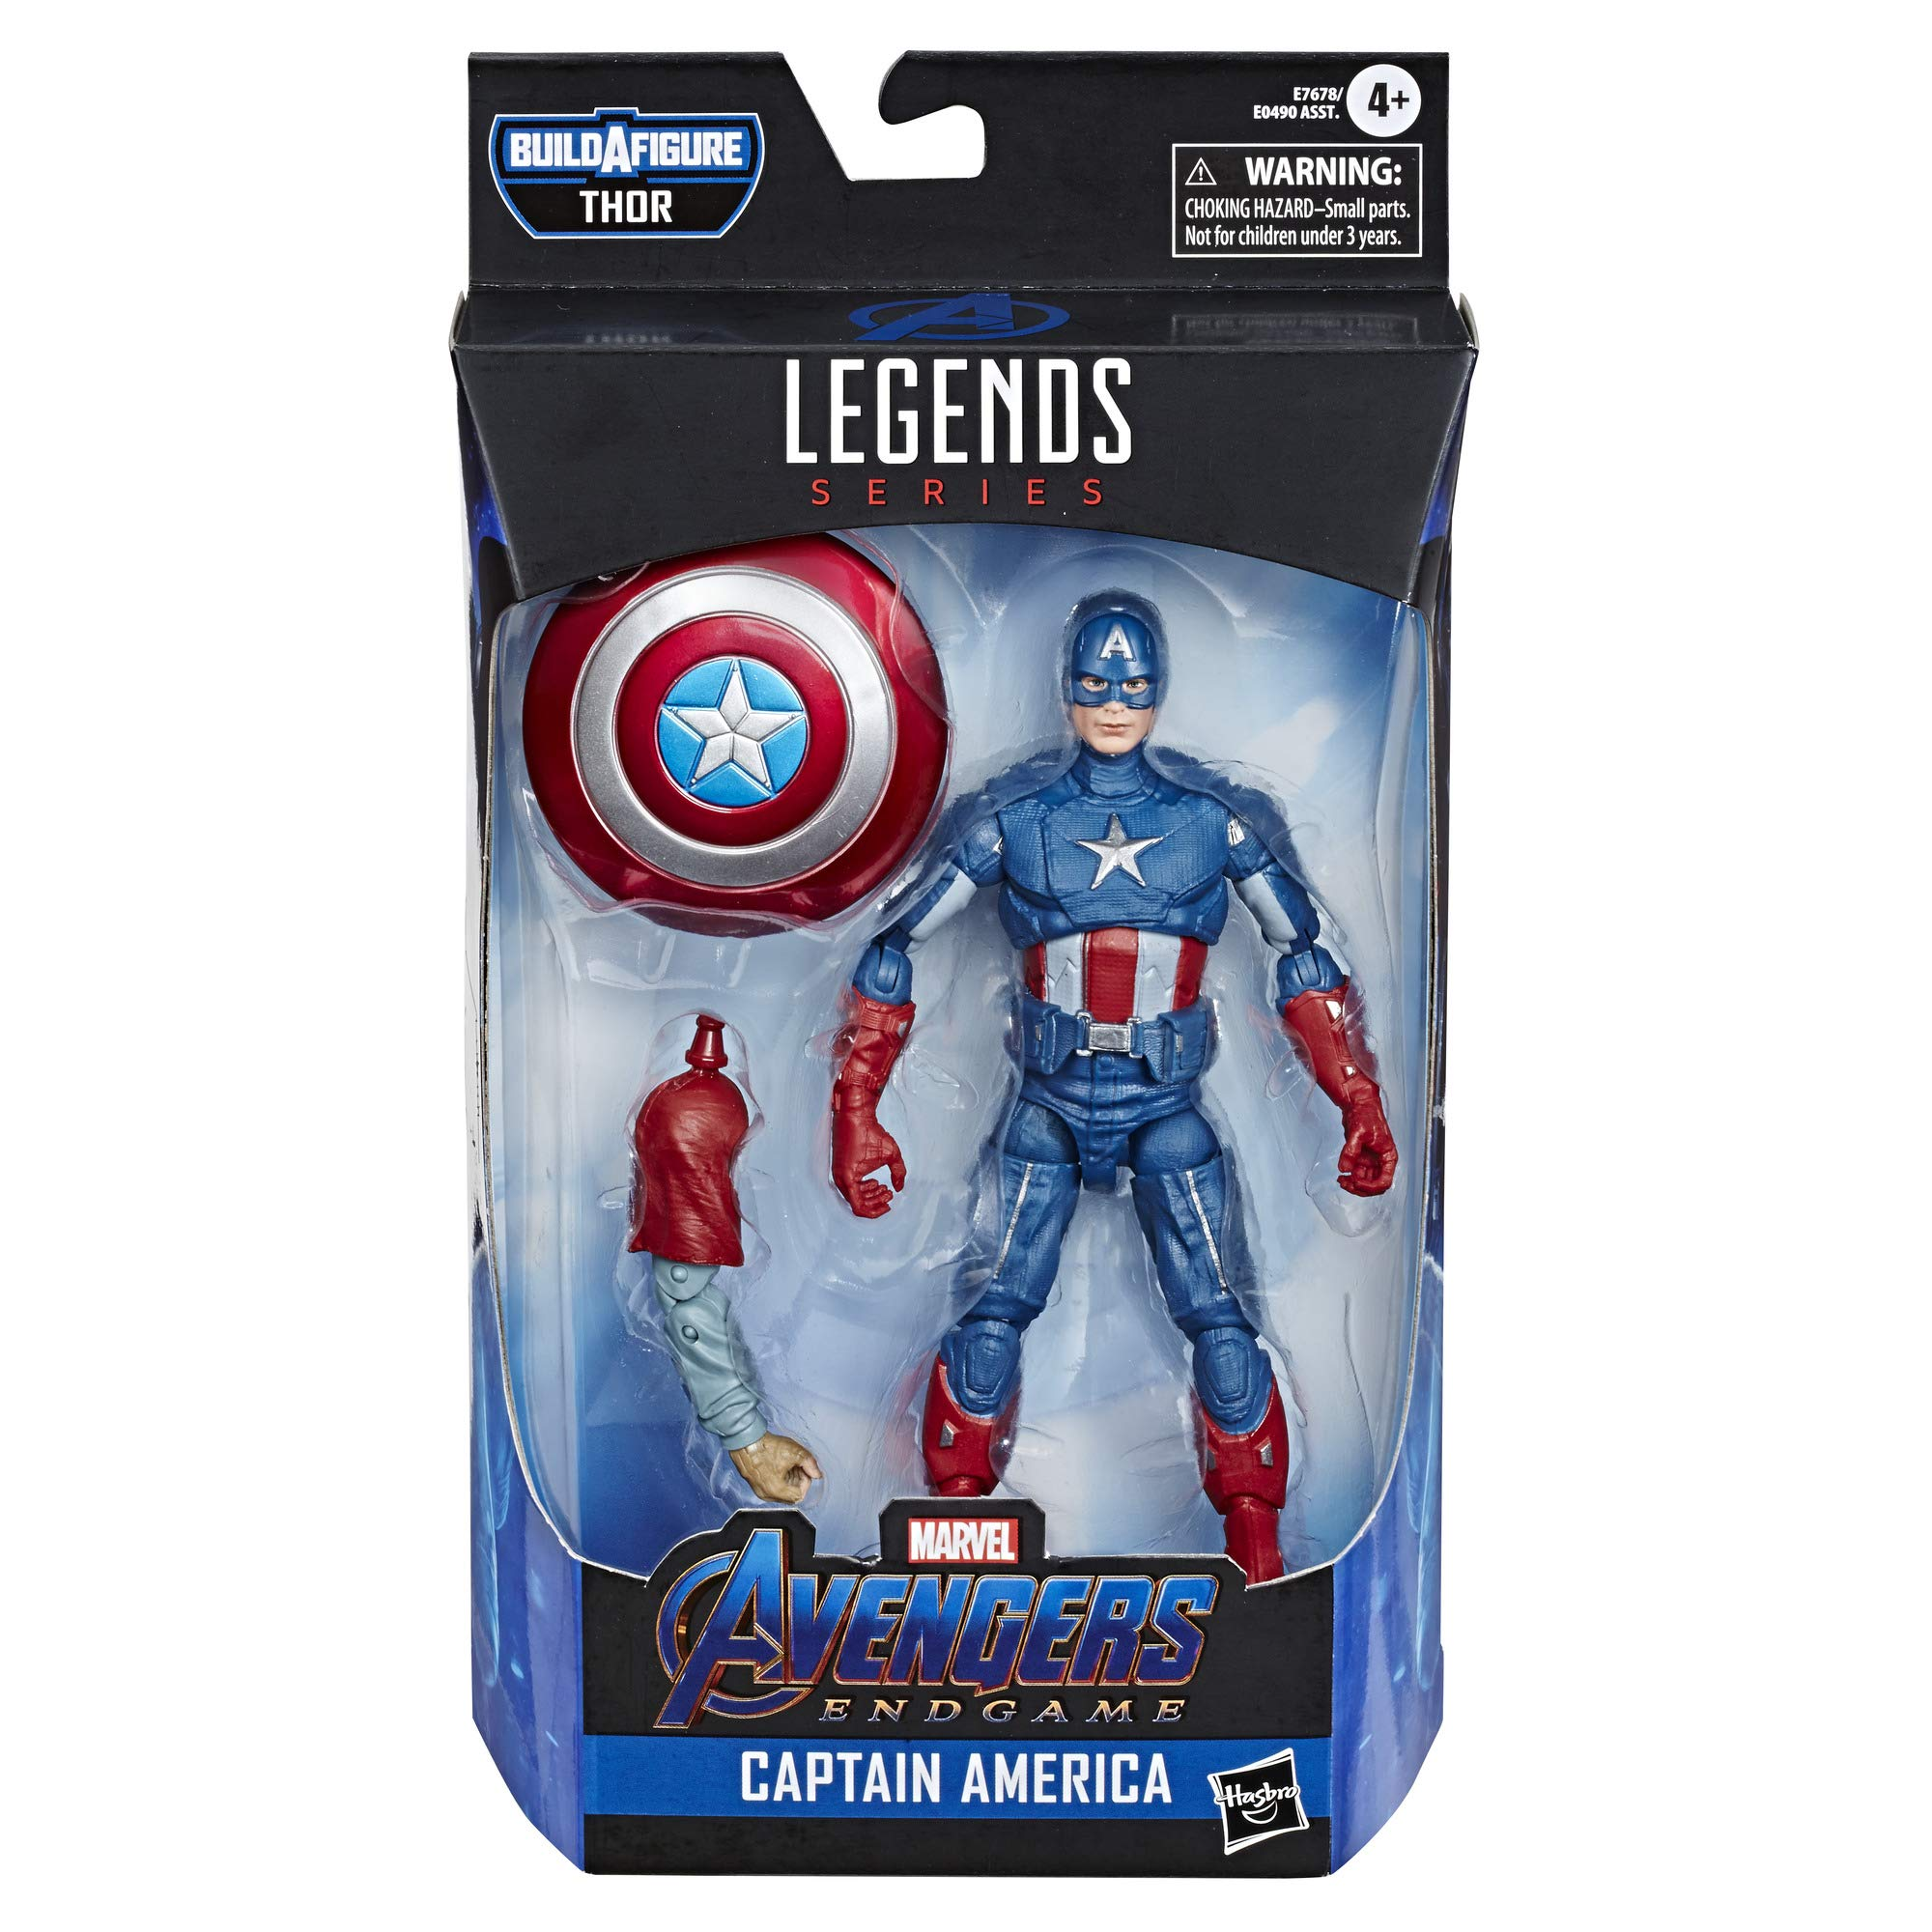 Avengers Marvel Legends Series Endgame 6'' Collectible Action Figure Captain America Collection, Includes 1 Accessory by Avengers (Image #2)